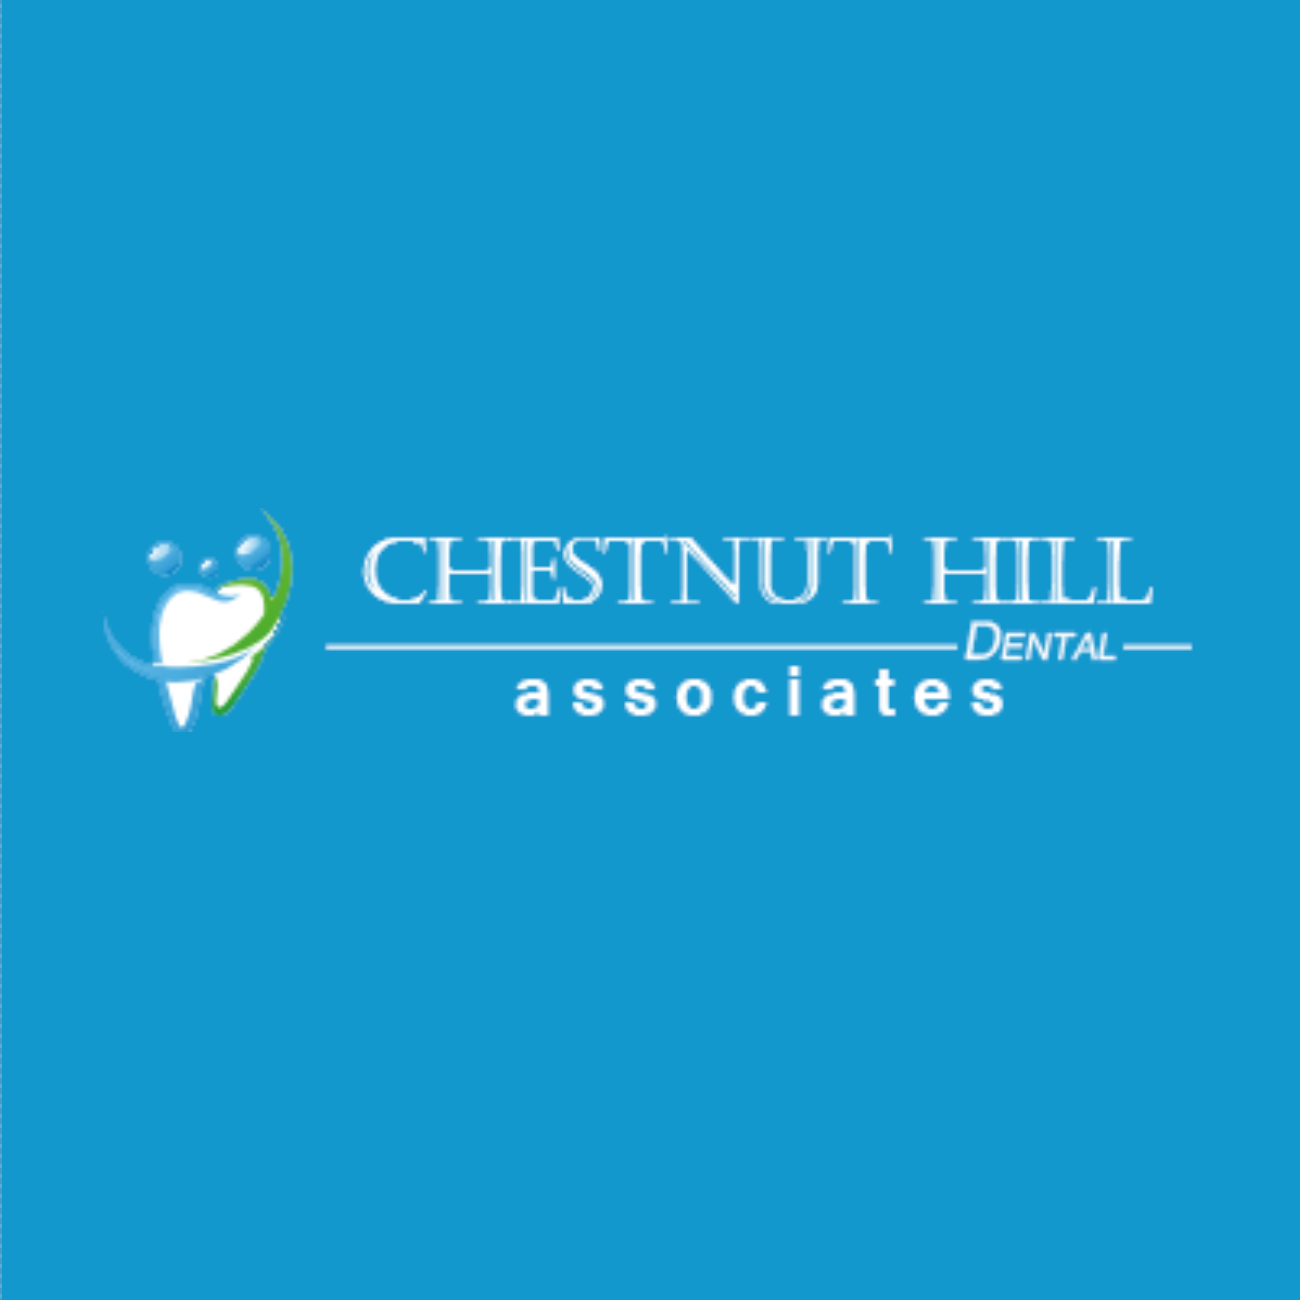 Chestnut Hill Dental Associates - Brighton, MA - Dentists & Dental Services